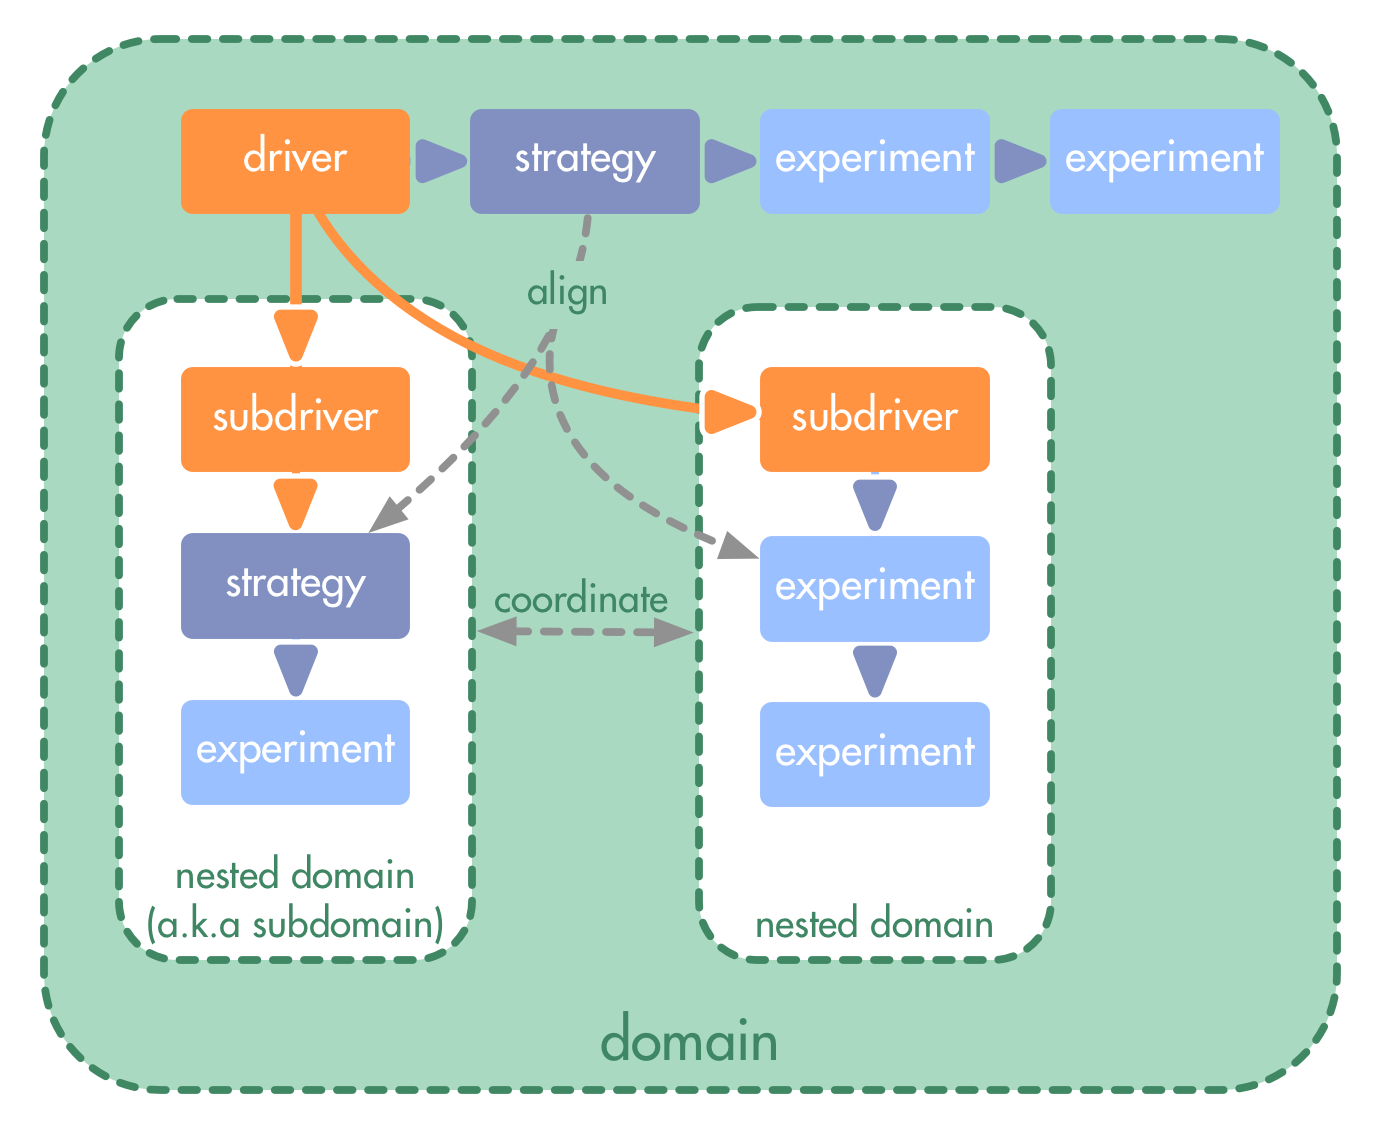 Strategies and Subdomains